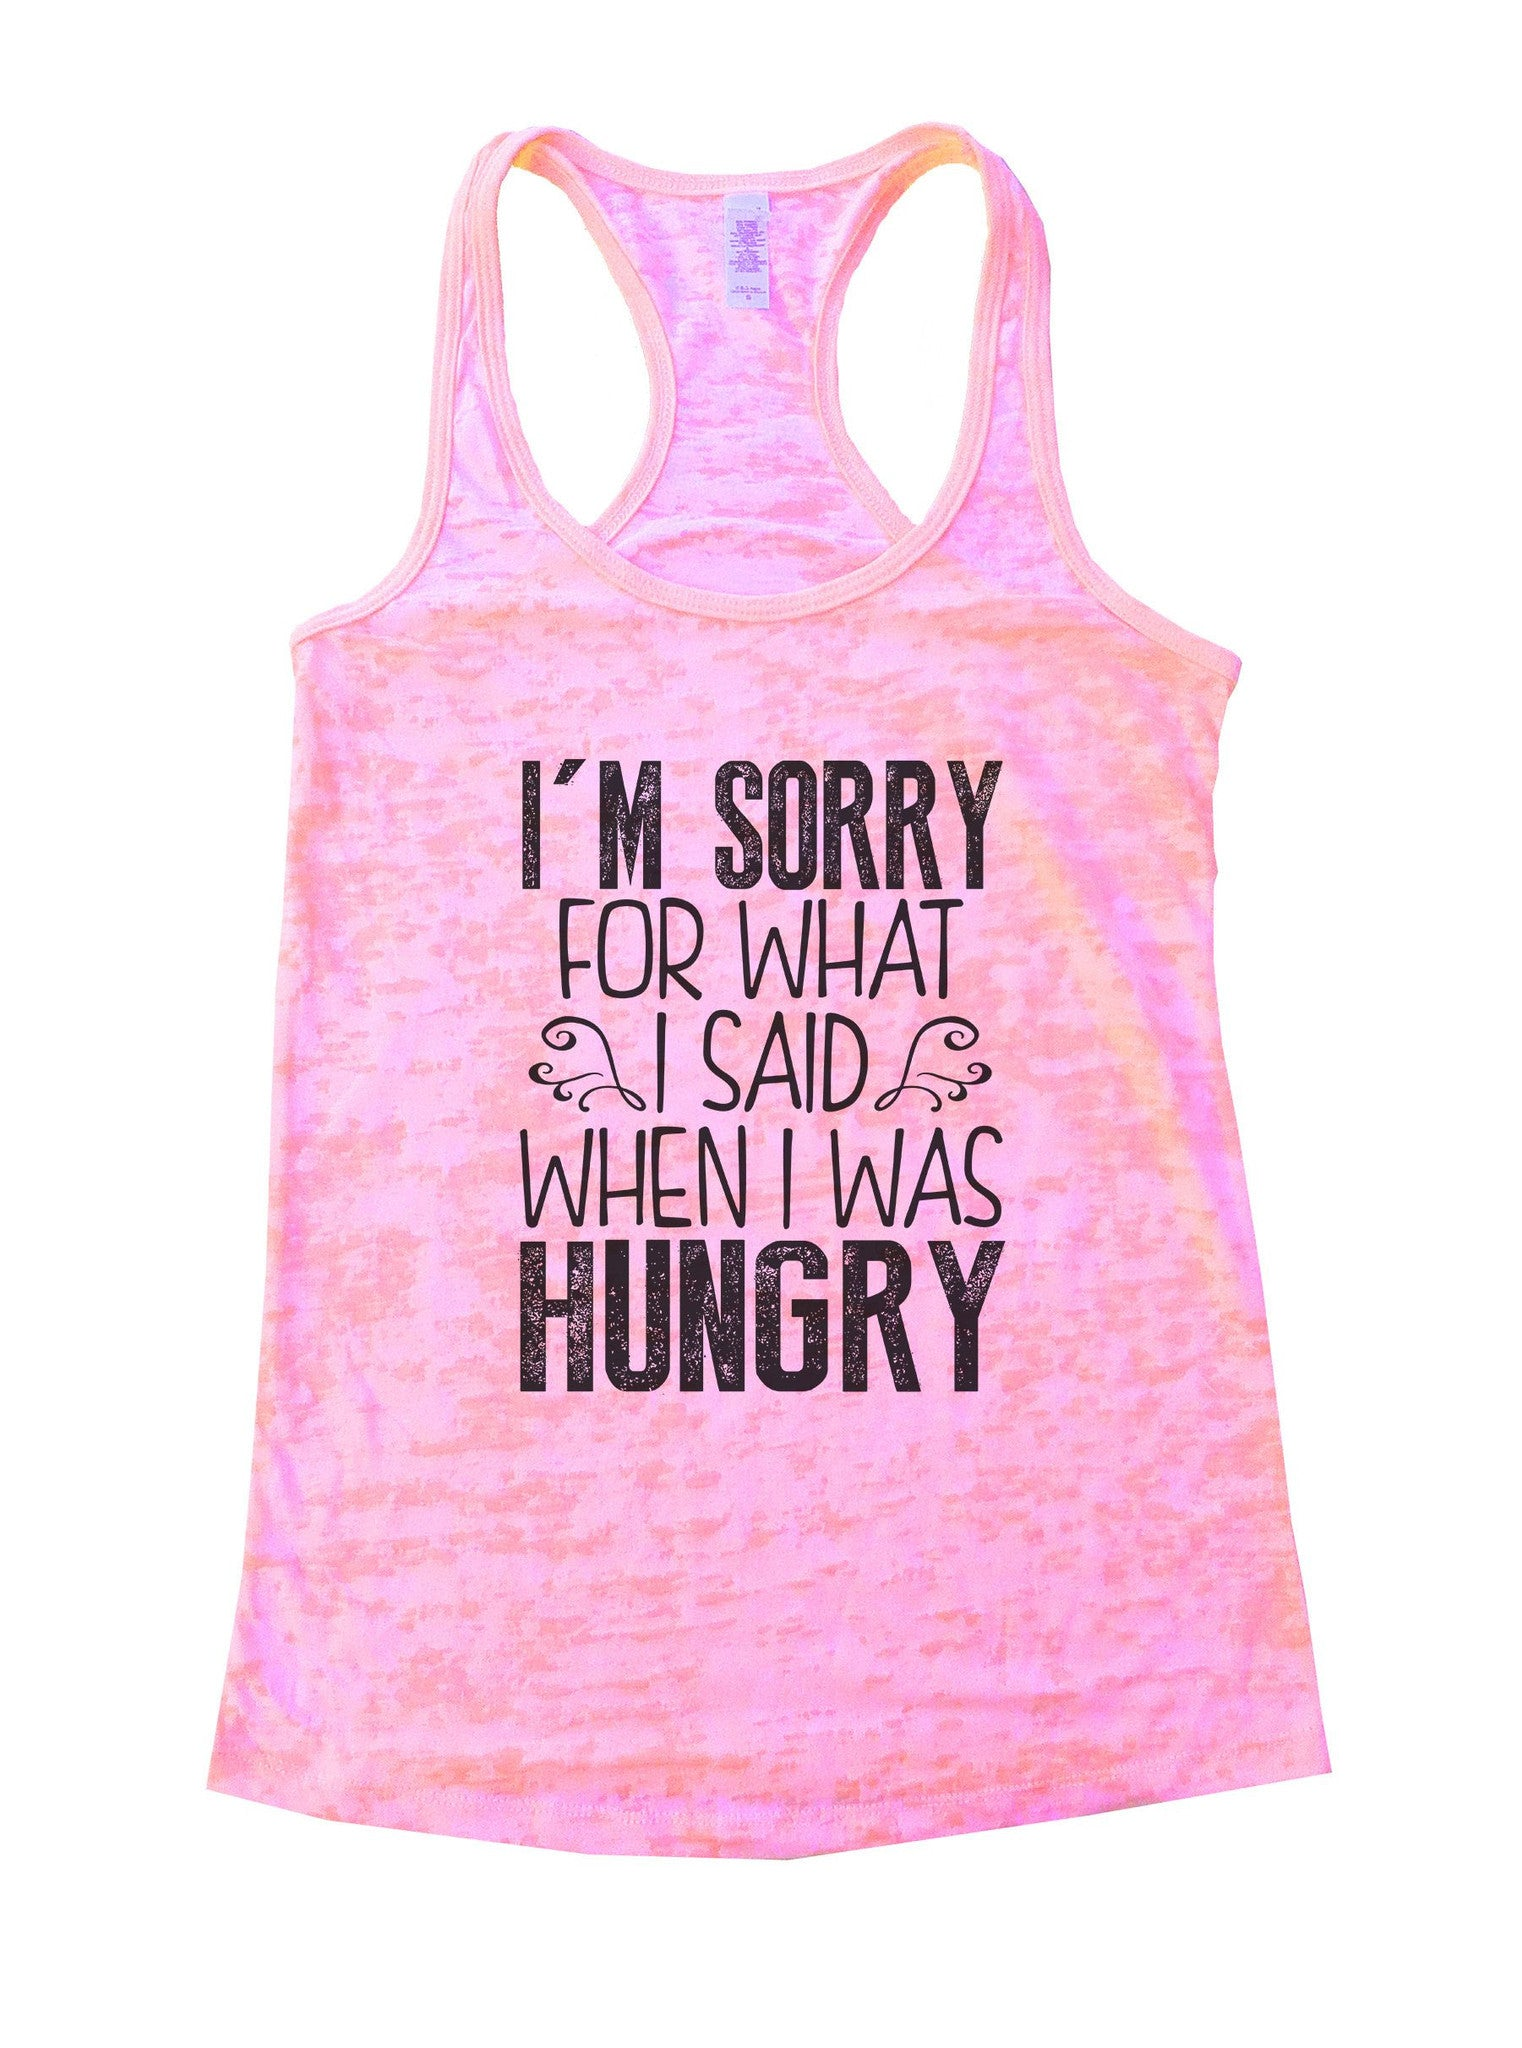 I'm Sorry For What I Said When I Was Hungry Burnout Tank Top By BurnoutTankTops.com - 952 - Funny Shirts Tank Tops Burnouts and Triblends  - 2